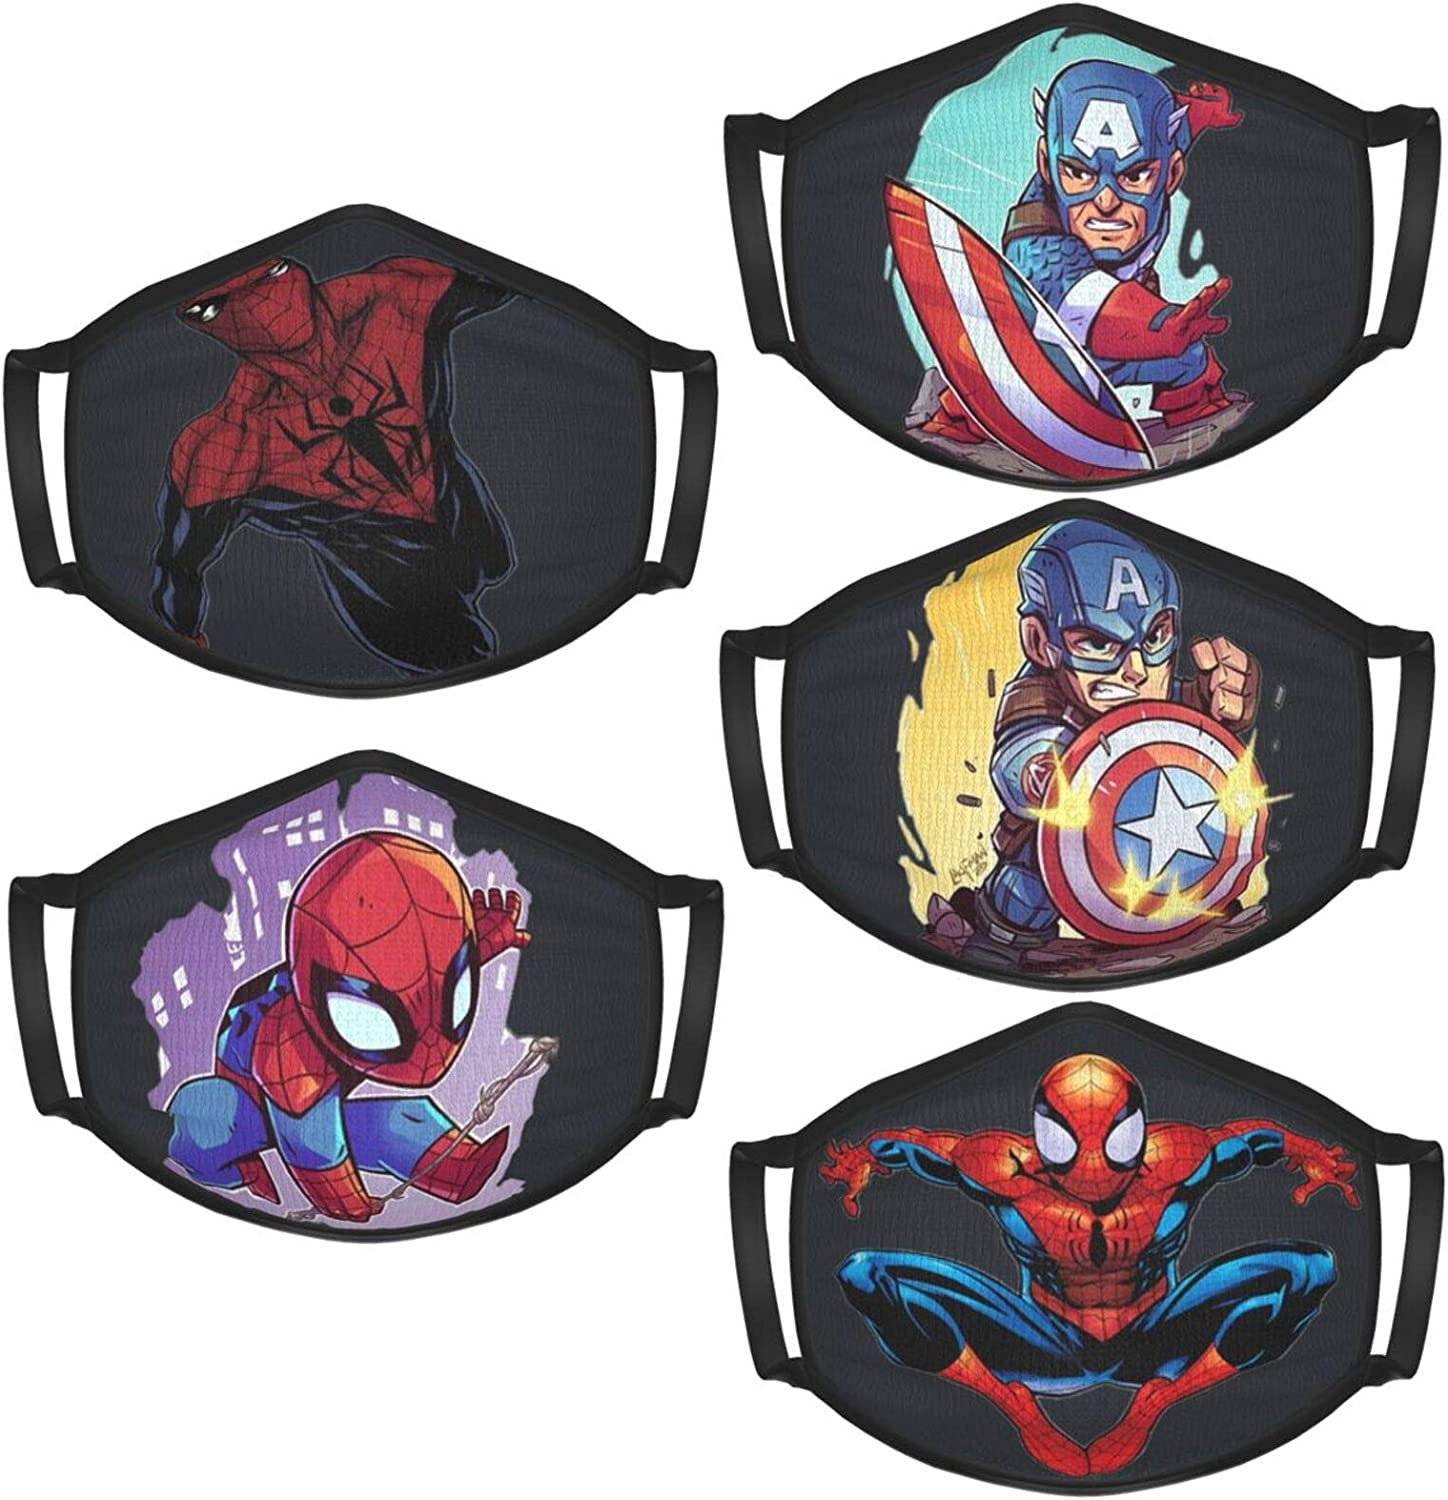 5-Pack Of Neutral Fabrics, Washable And Repeatable, Children'S Mask, Comfortable Protective Mask, Men'S And Women'S Styles Are Suitable For Outdoor Use